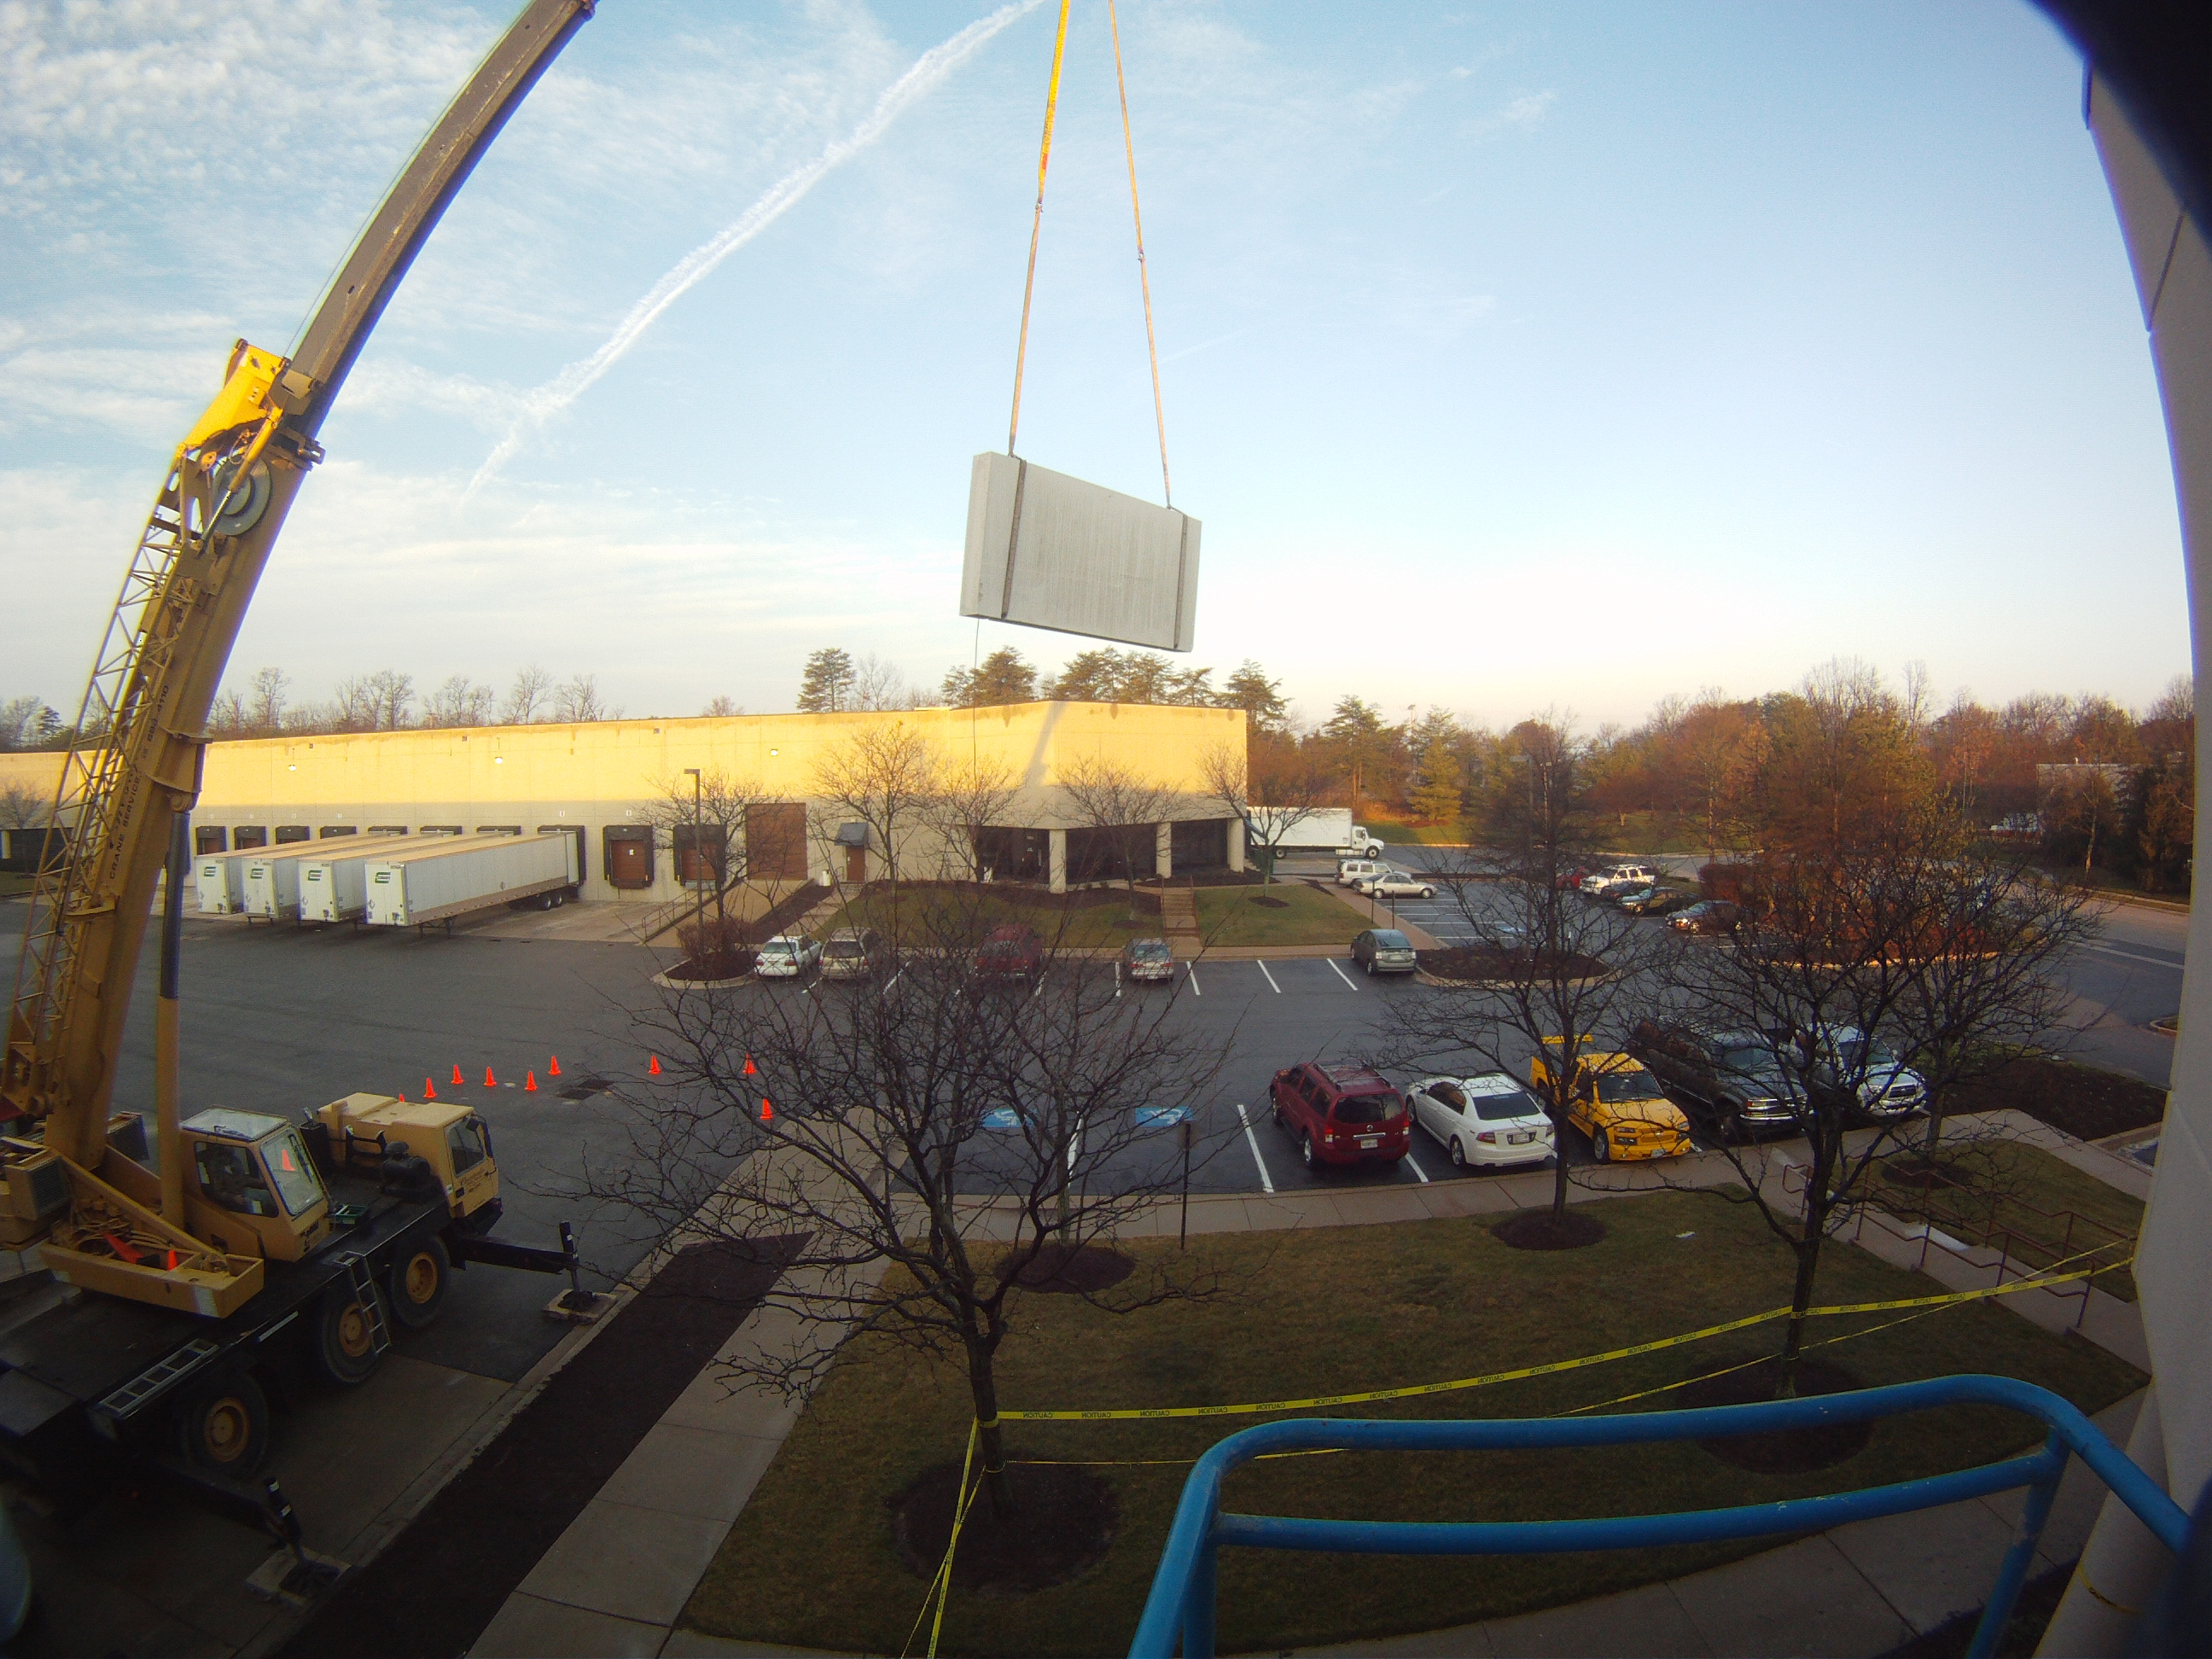 Concrete Panel Lifted Out By Crane